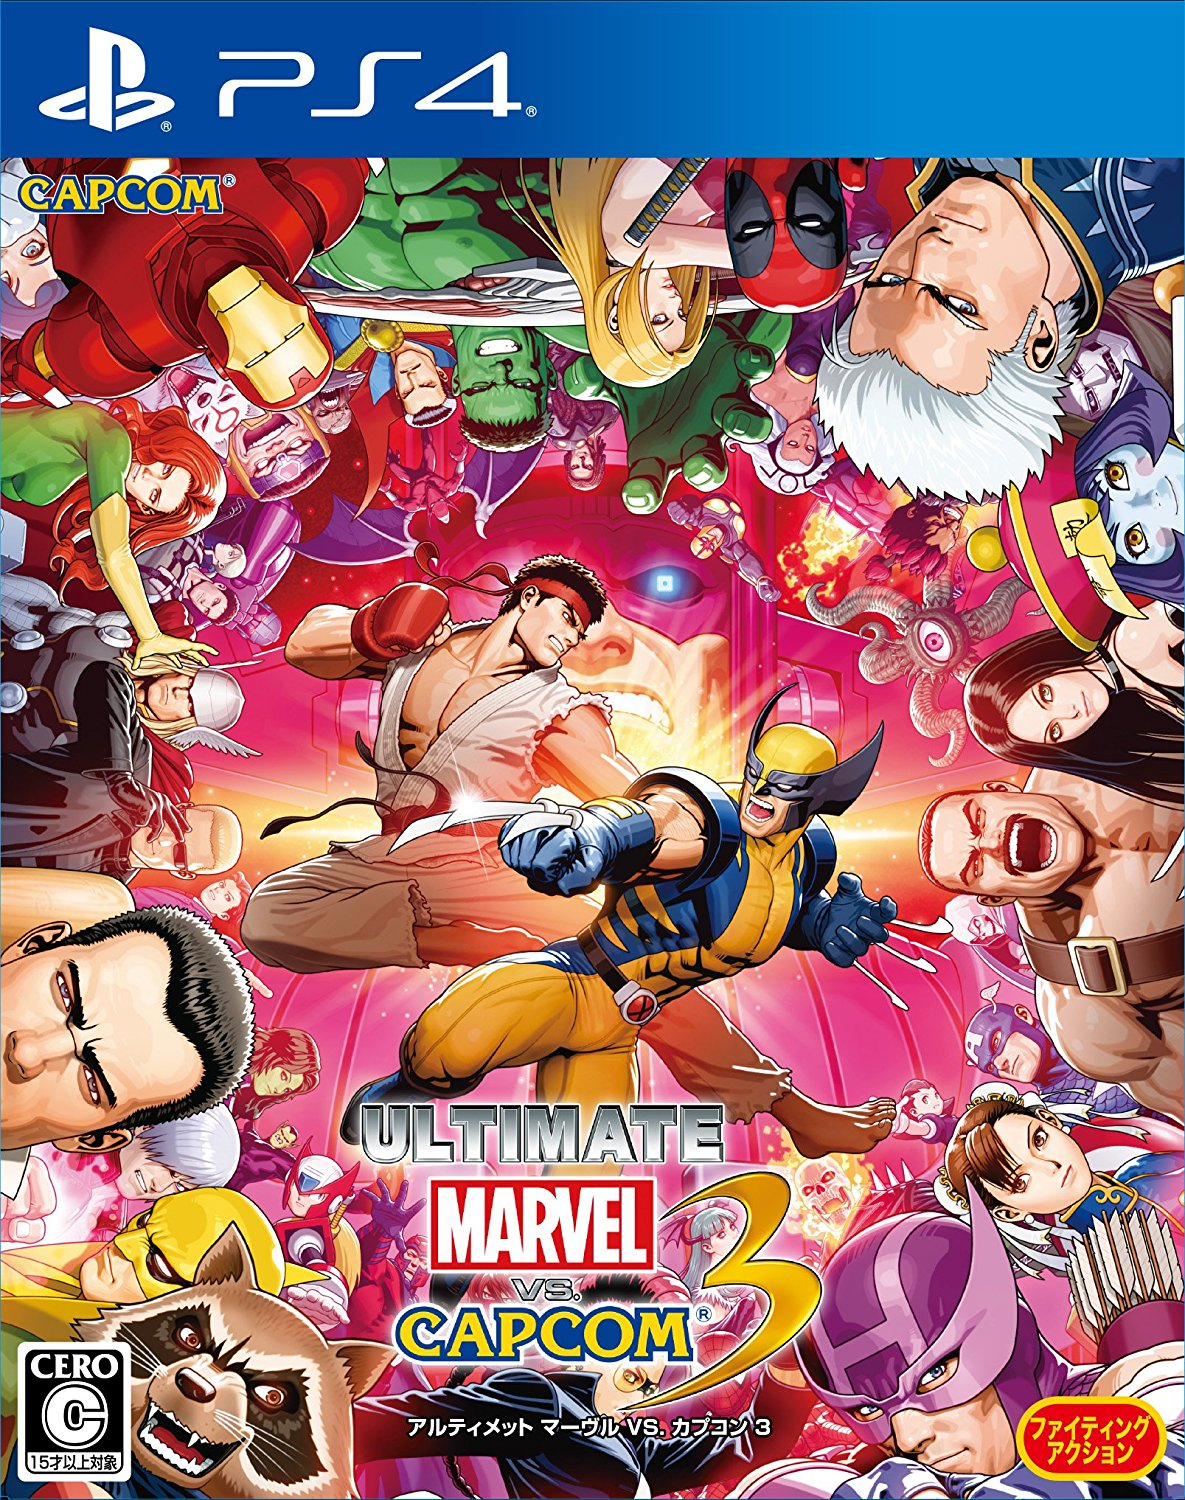 PS4 ULTIMATE MARVEL VS. CAPCOM 3 (PlayStation 4) JPN